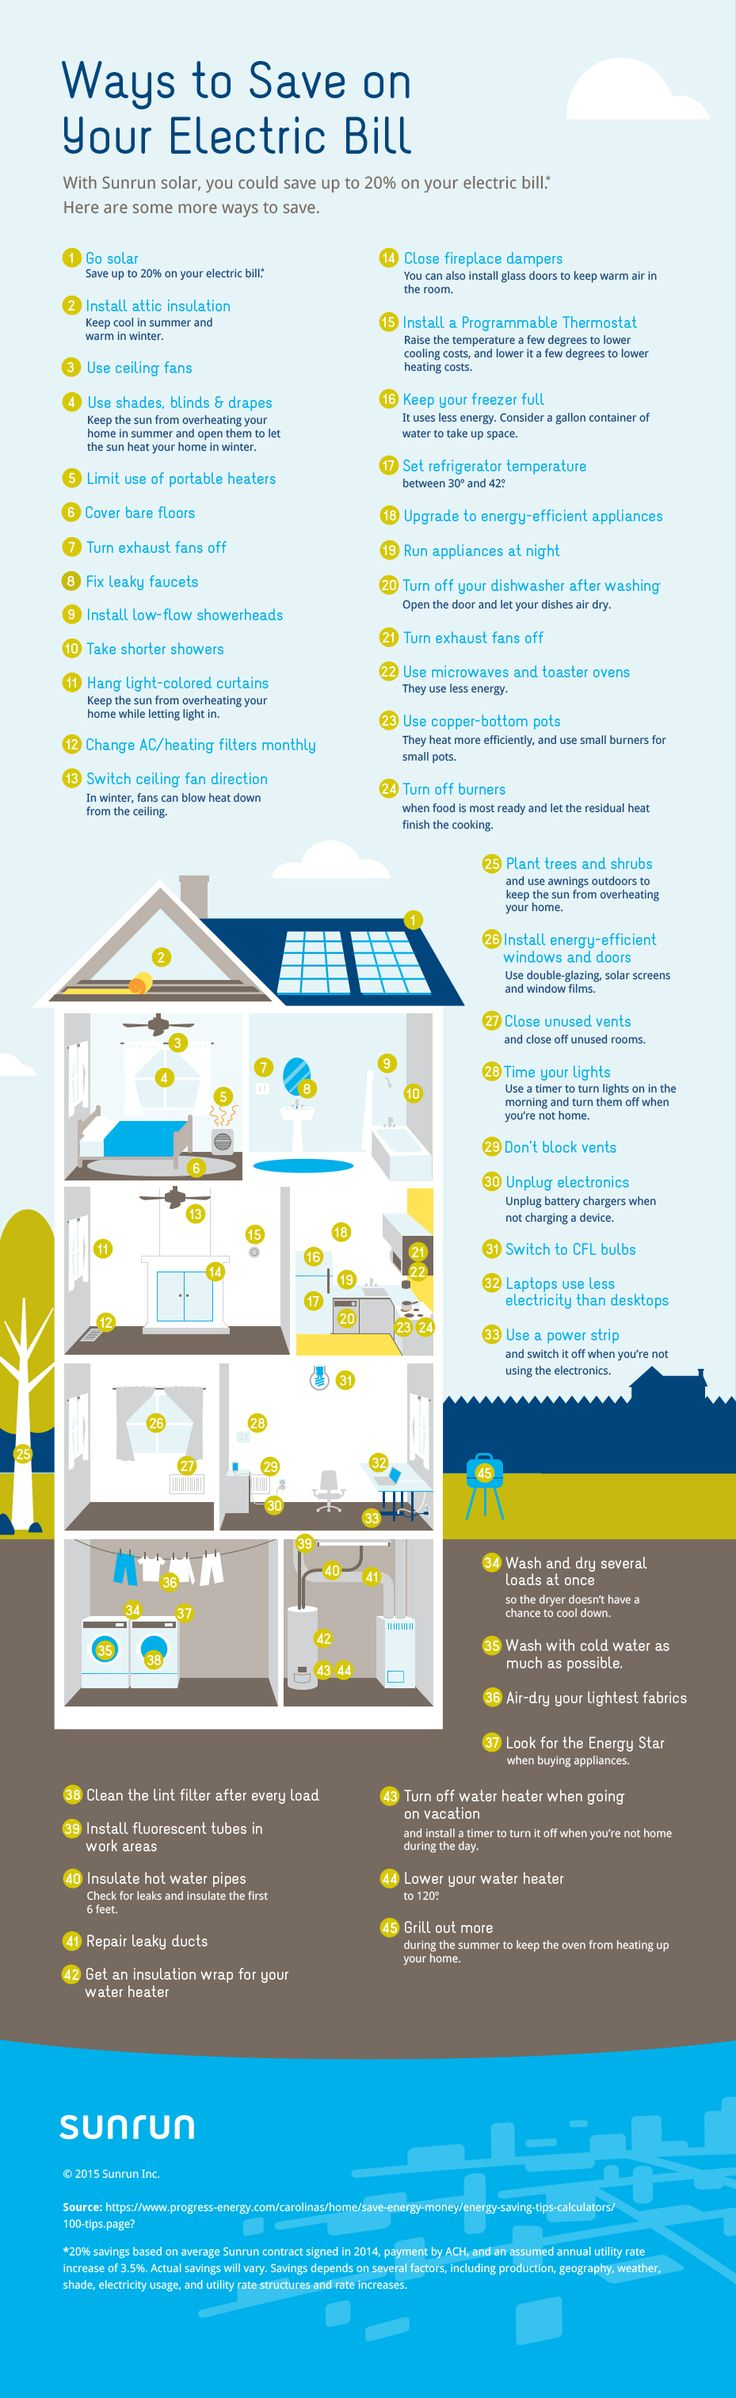 Other ways to save on your electric bill